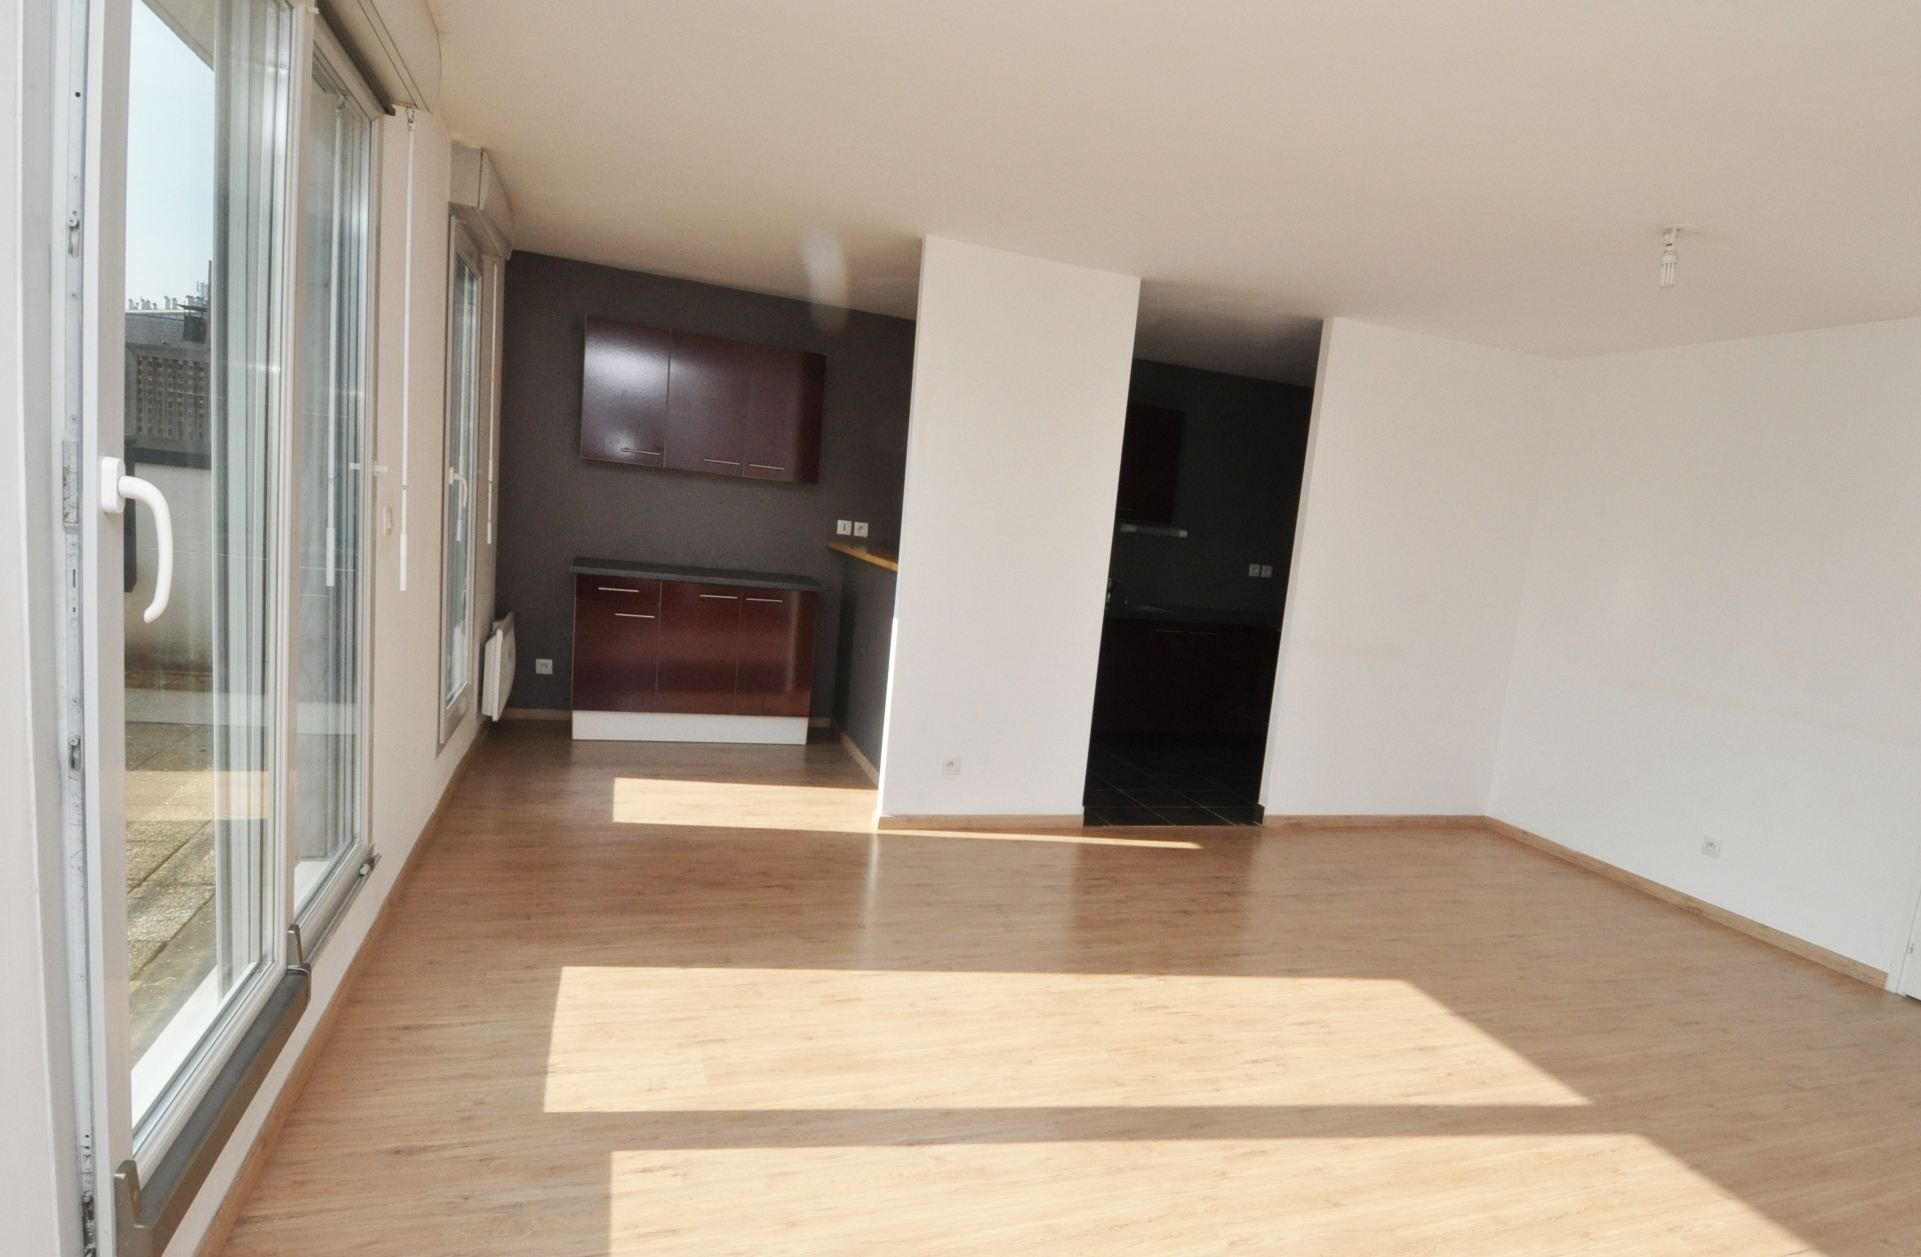 sales property at LILLE, Montebello-Cormontaigne, recent Luxury apartment 86m2 on the top floor.